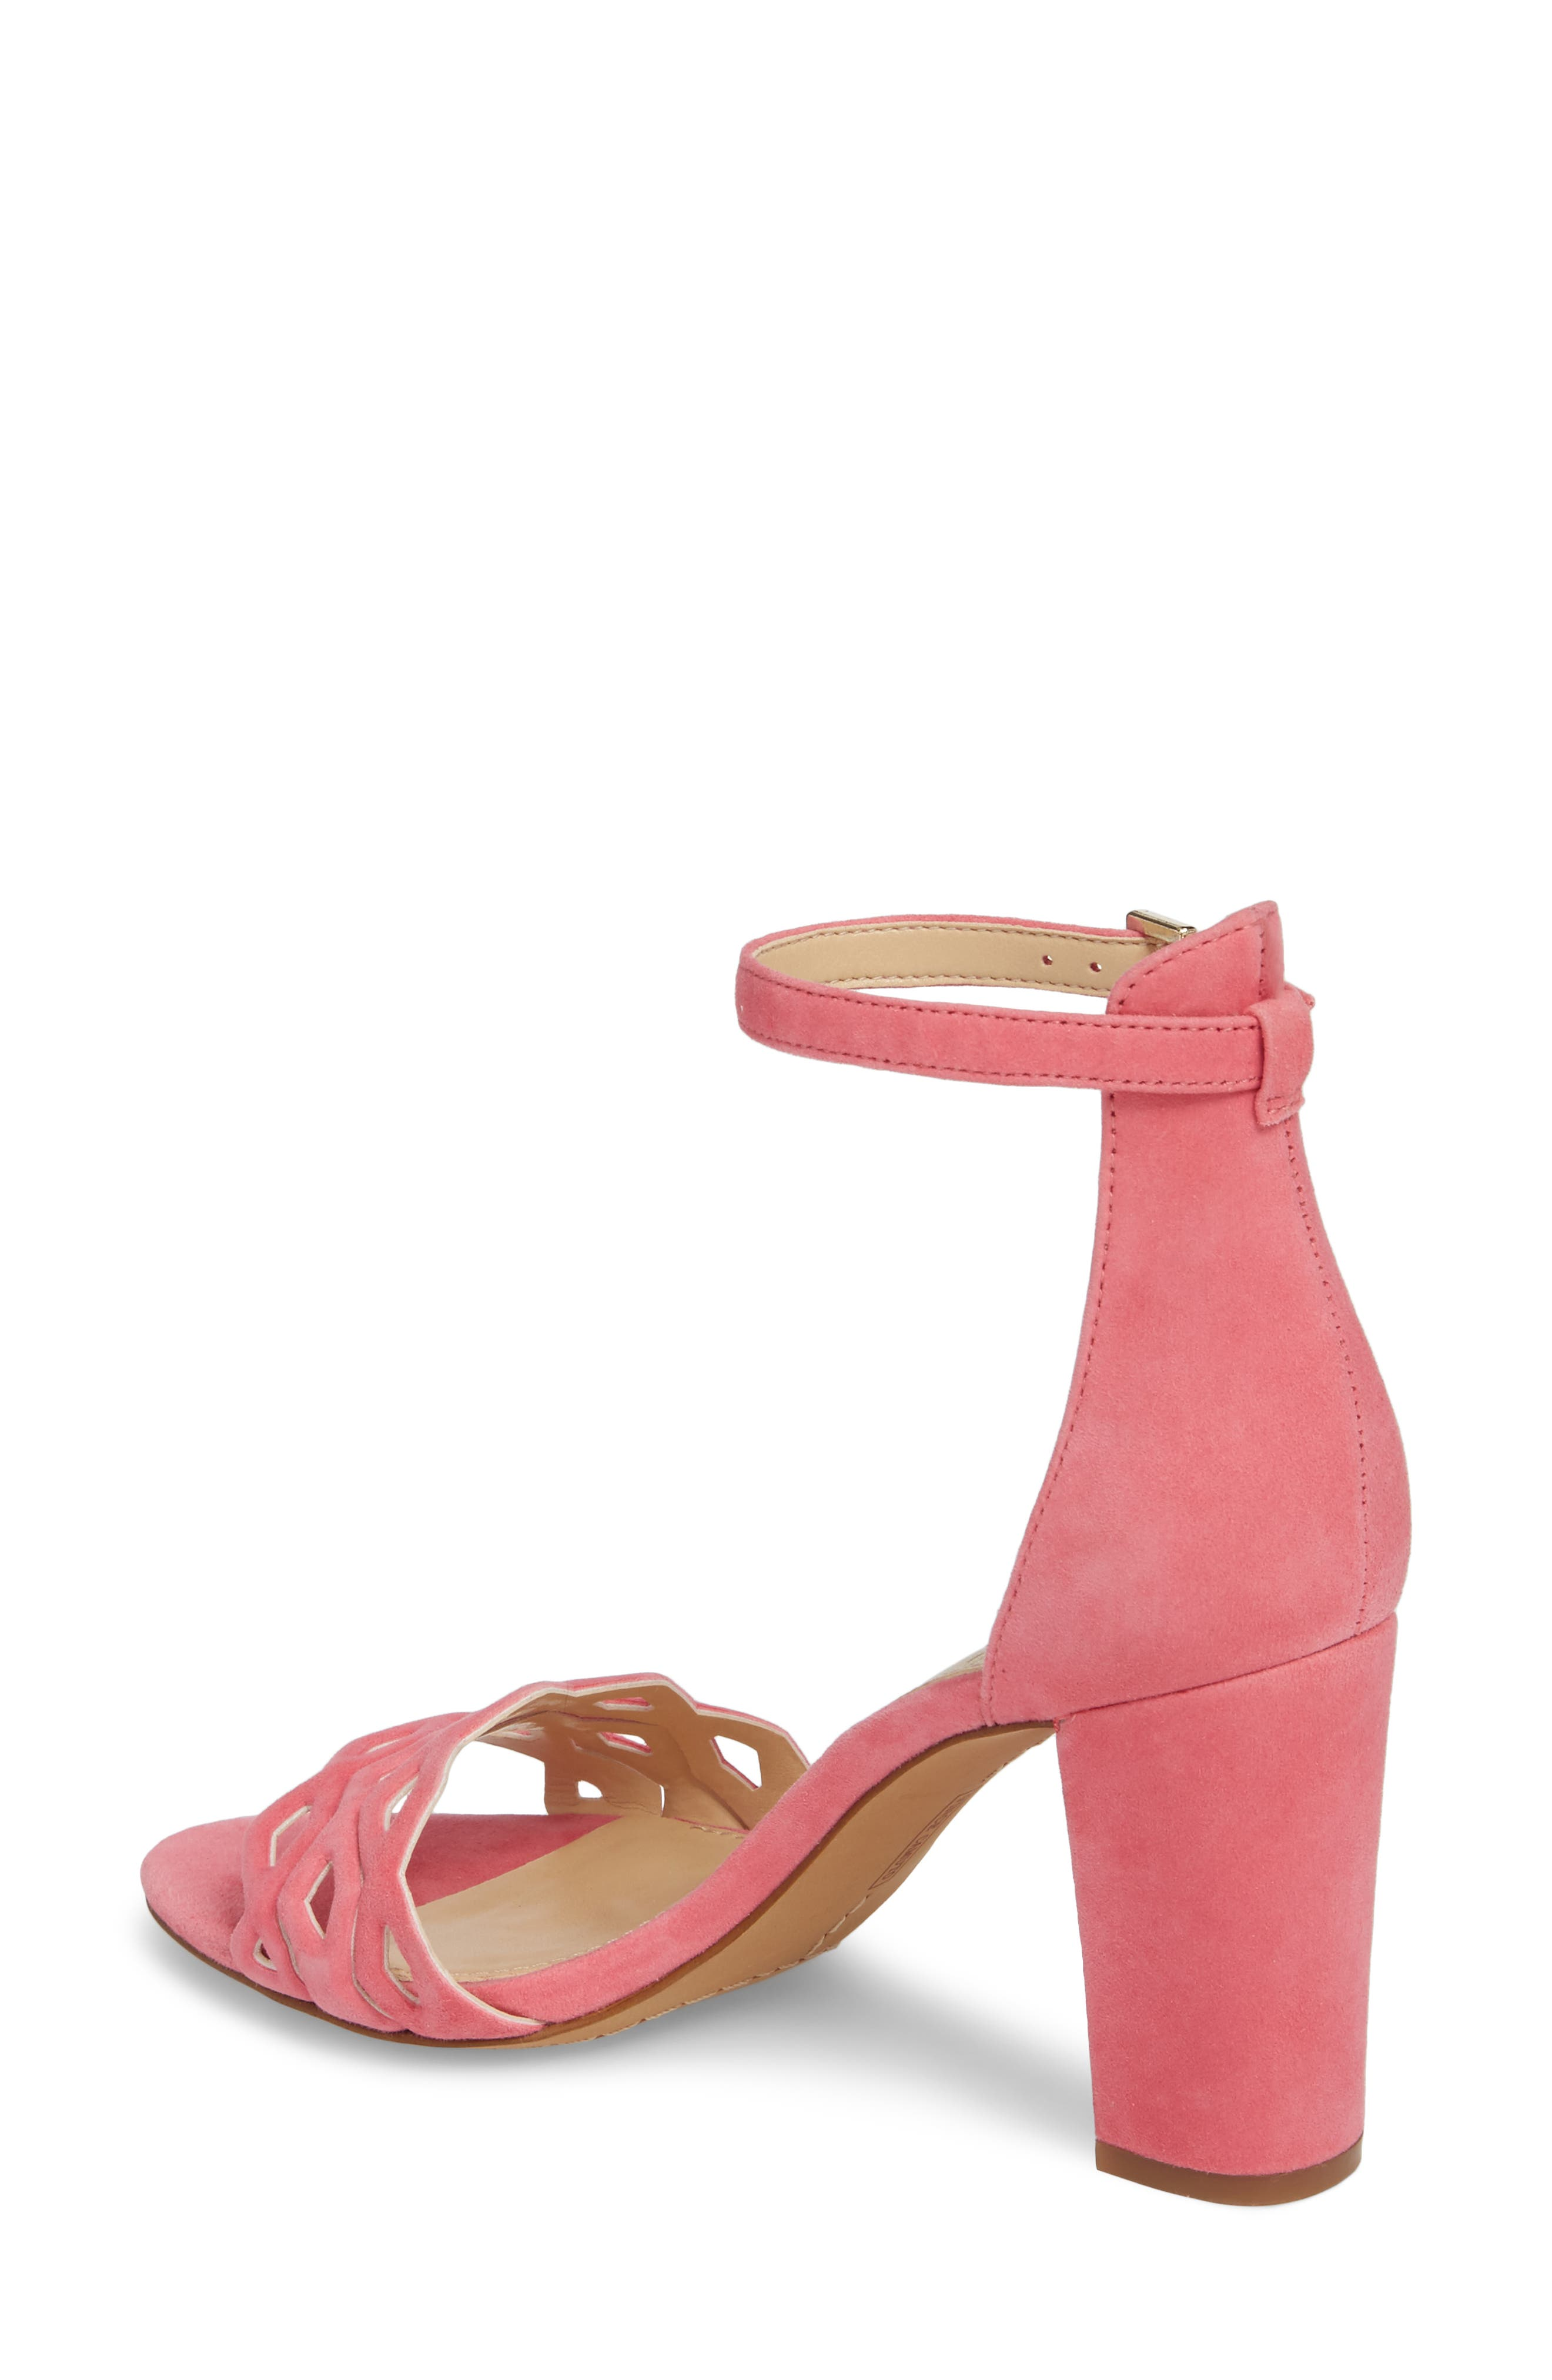 Caveena Block Heel Sandal,                             Alternate thumbnail 2, color,                             Soft Pink Suede